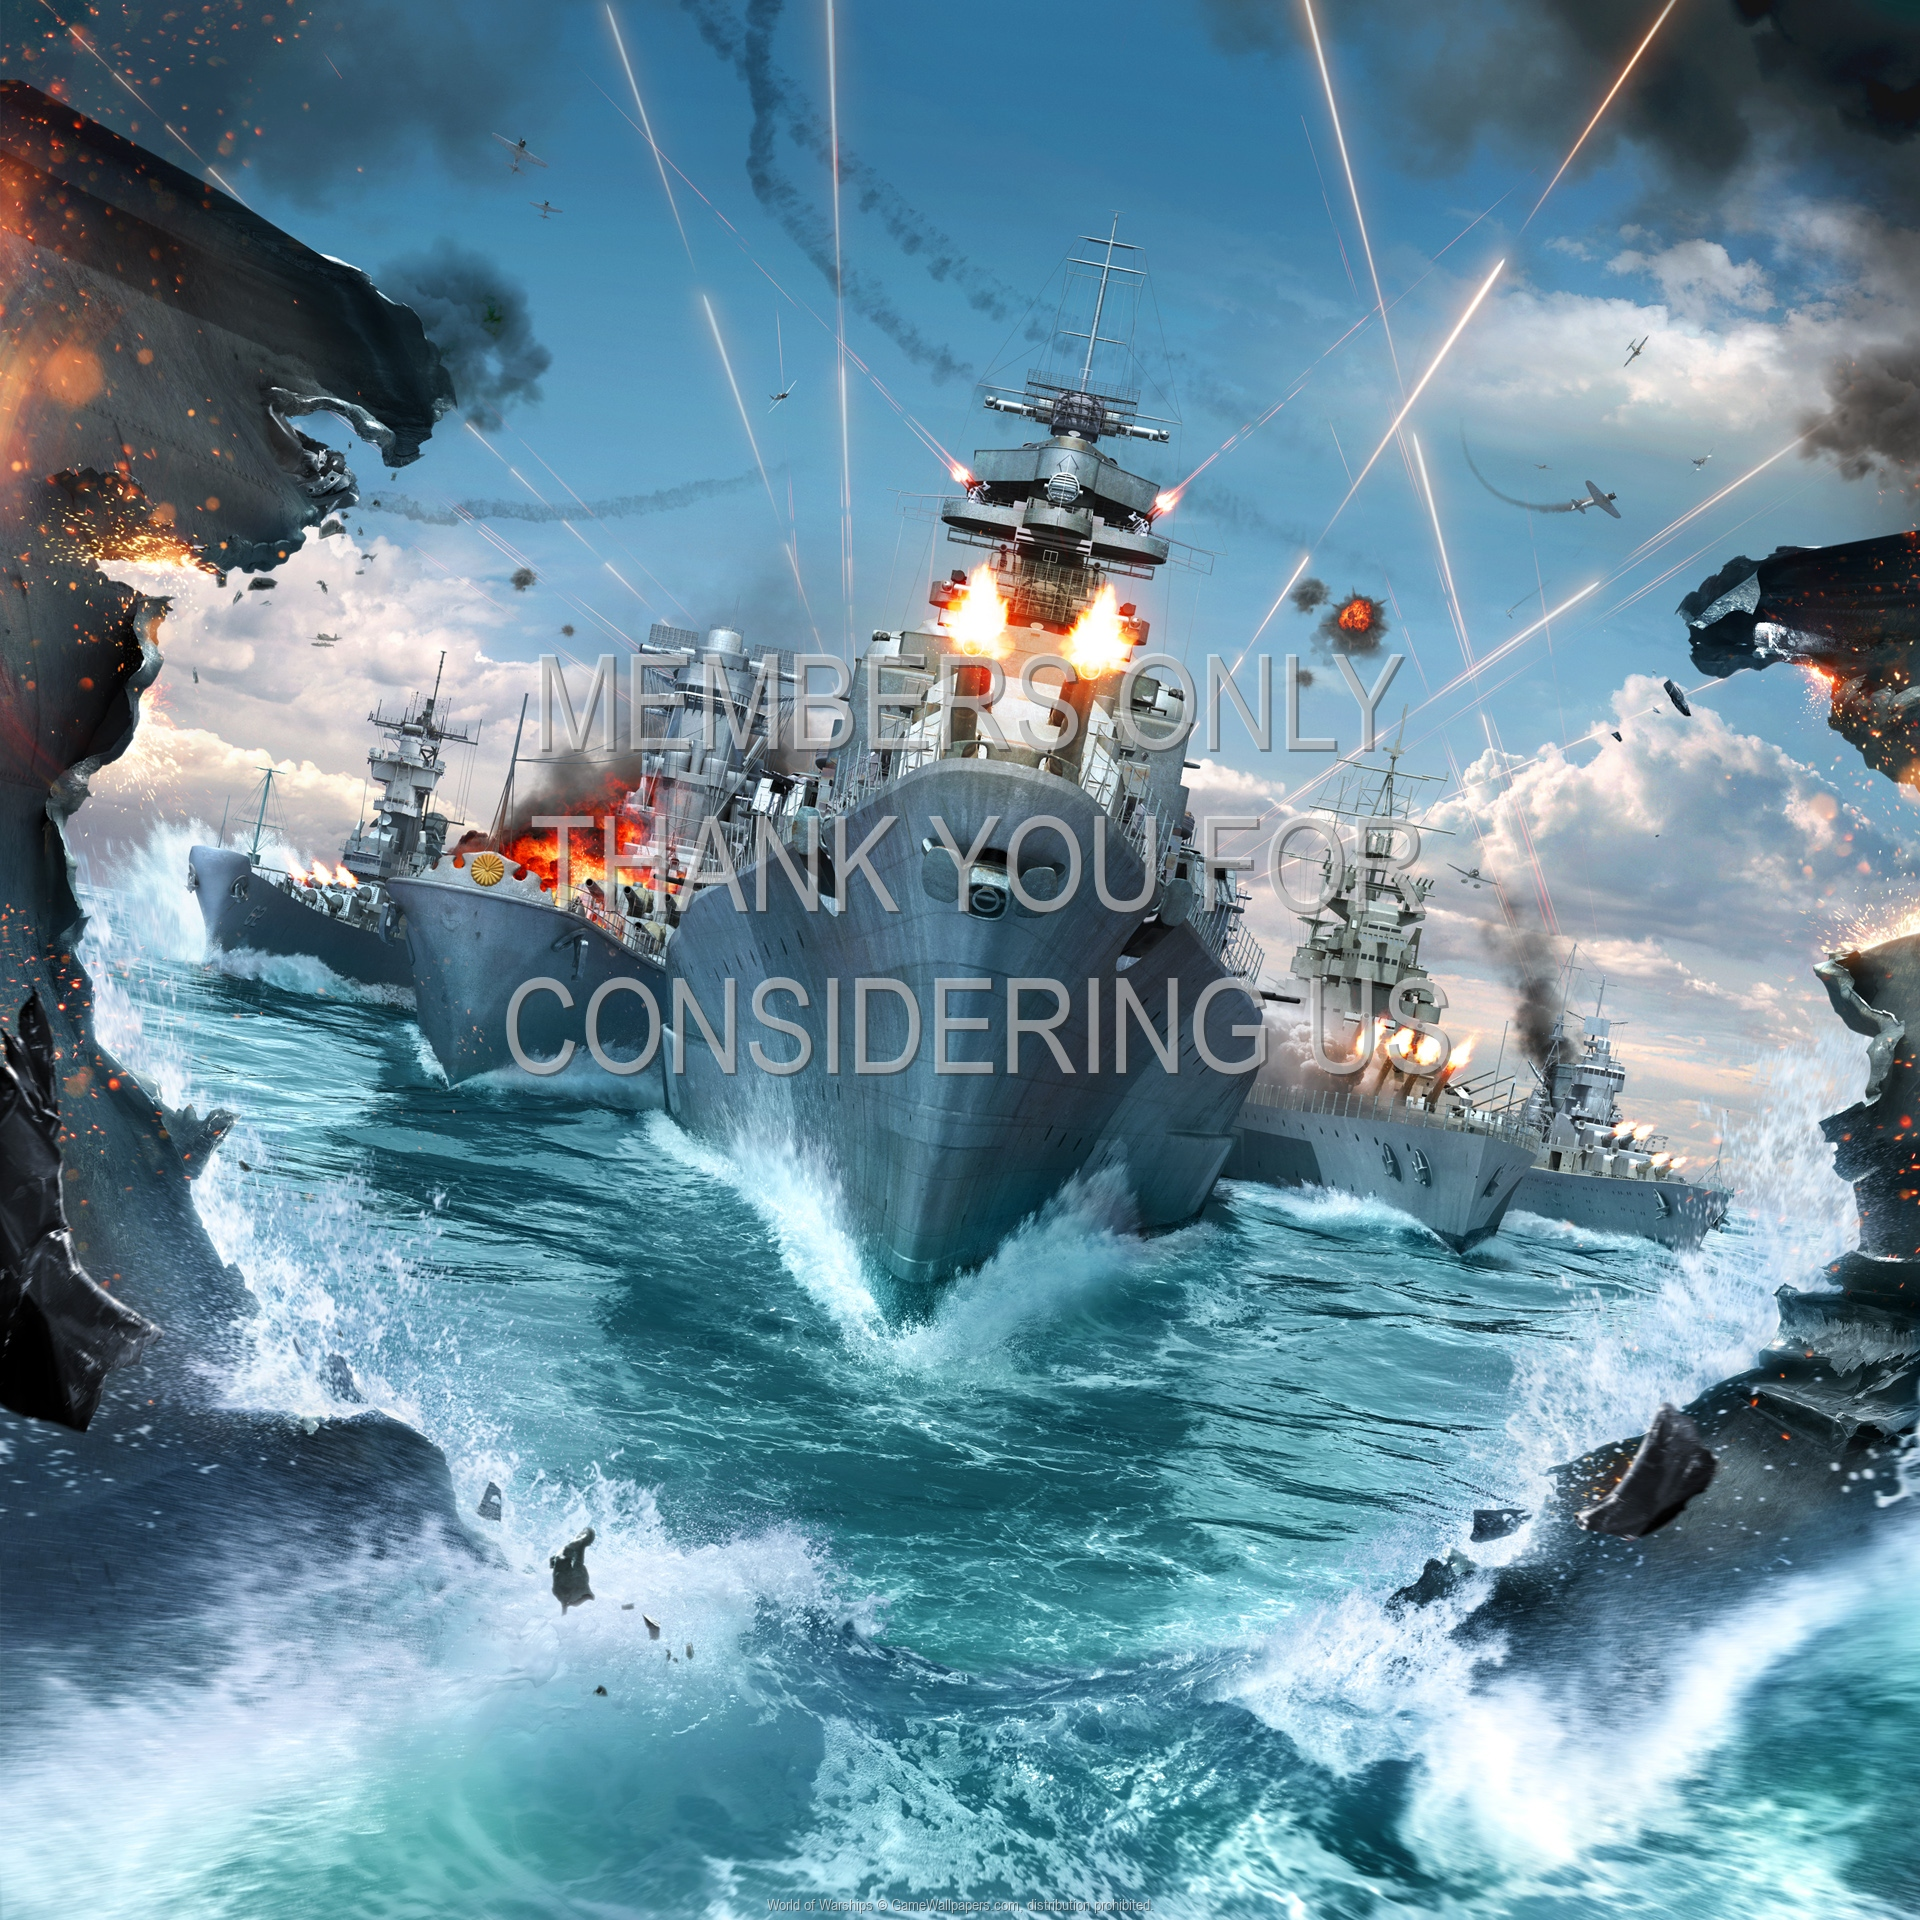 World of Warships 1920x1080 Mobiele achtergrond 01